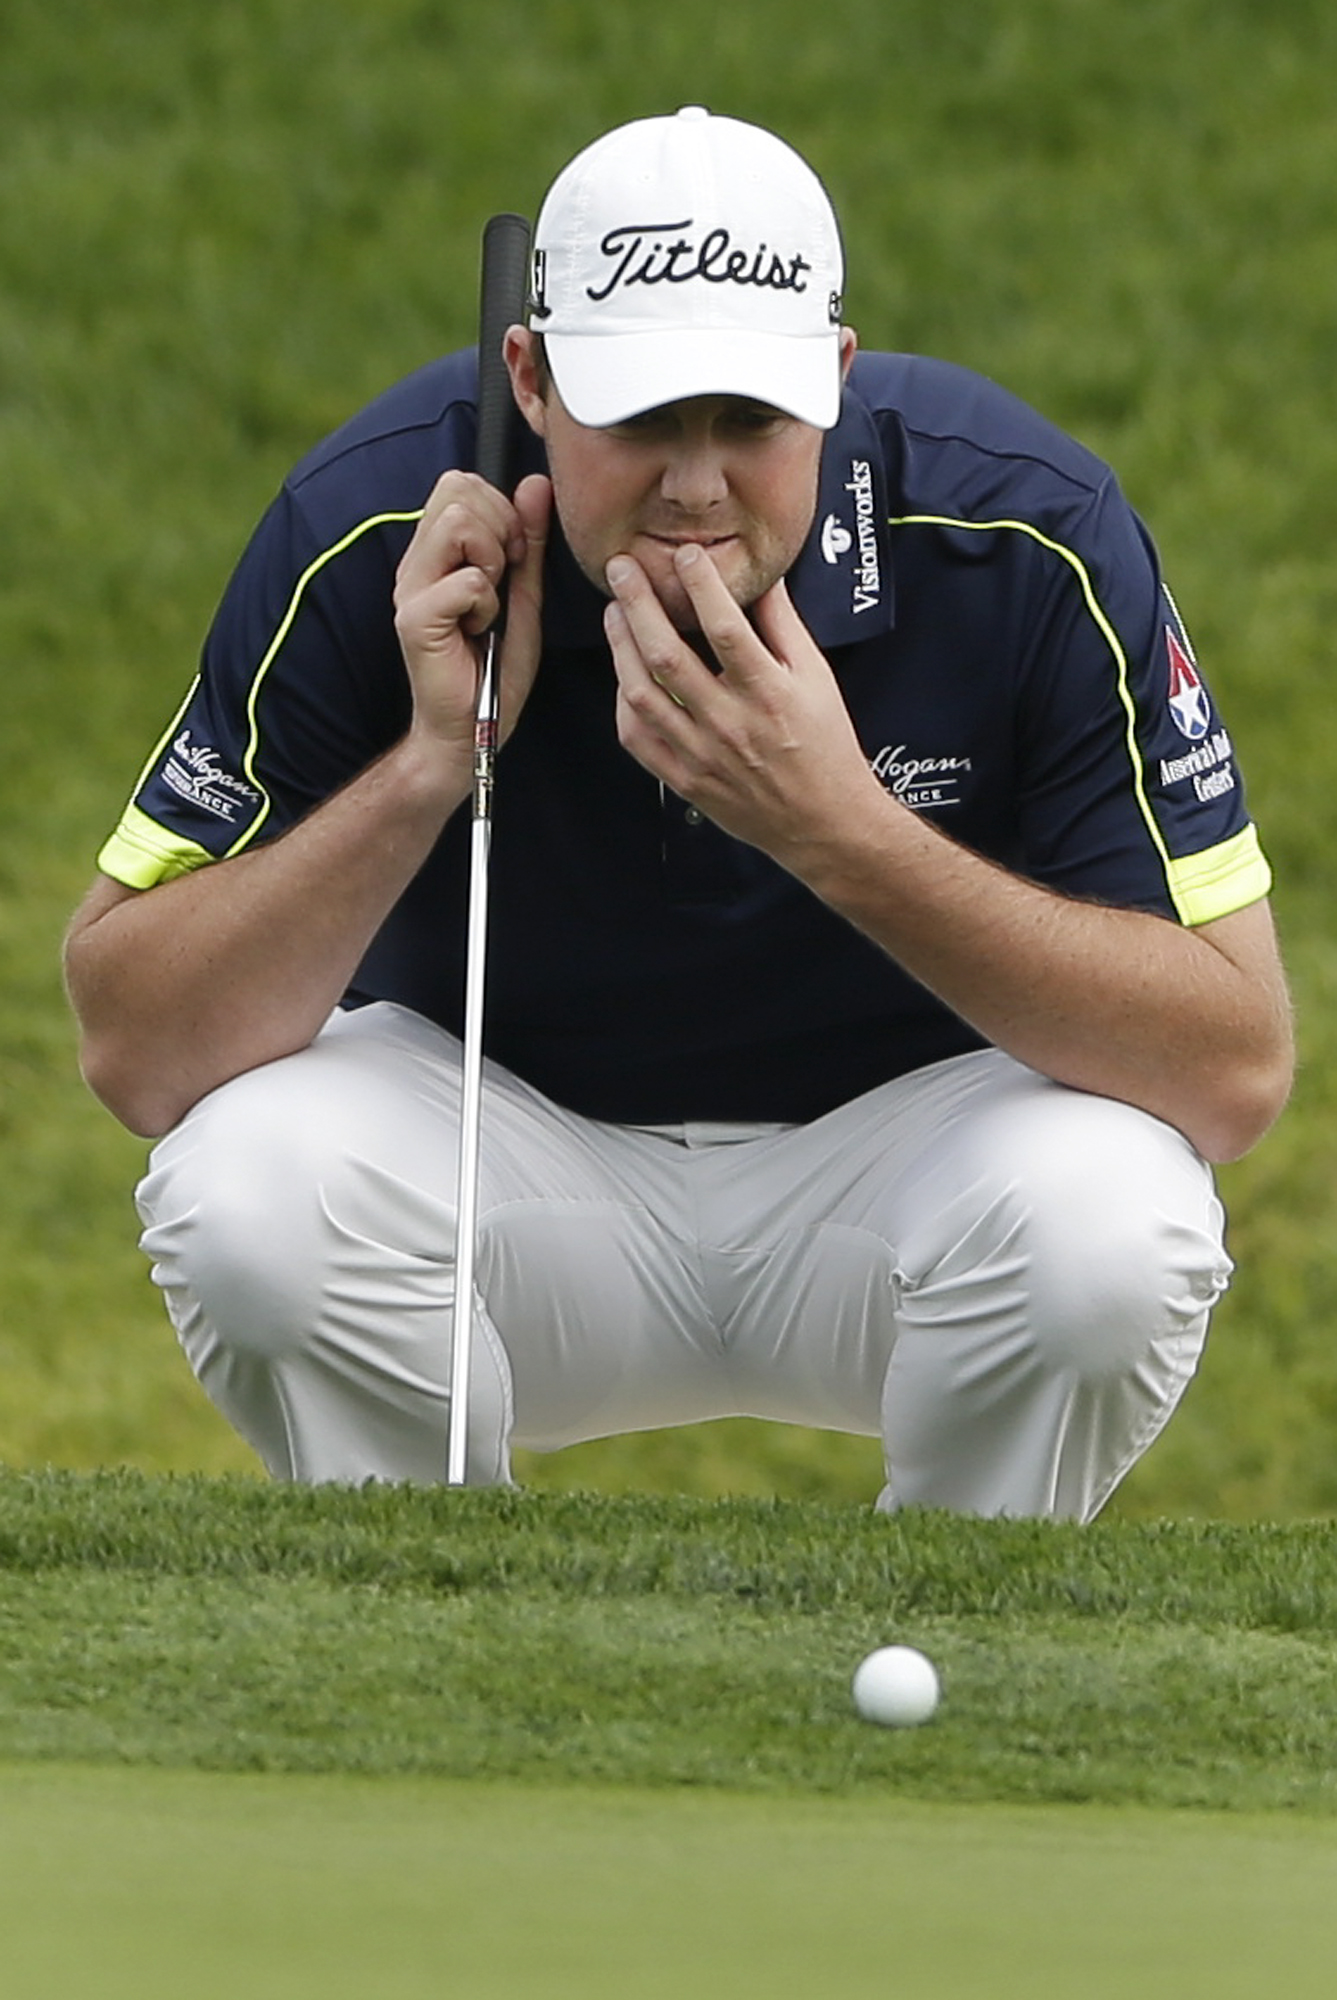 Marc Leishman, of Australia, eyes his line just off the 18th green of the south course during the second round of the Farmers Insurance Open golf tournament Friday, Jan. 24, 2014, in San Diego